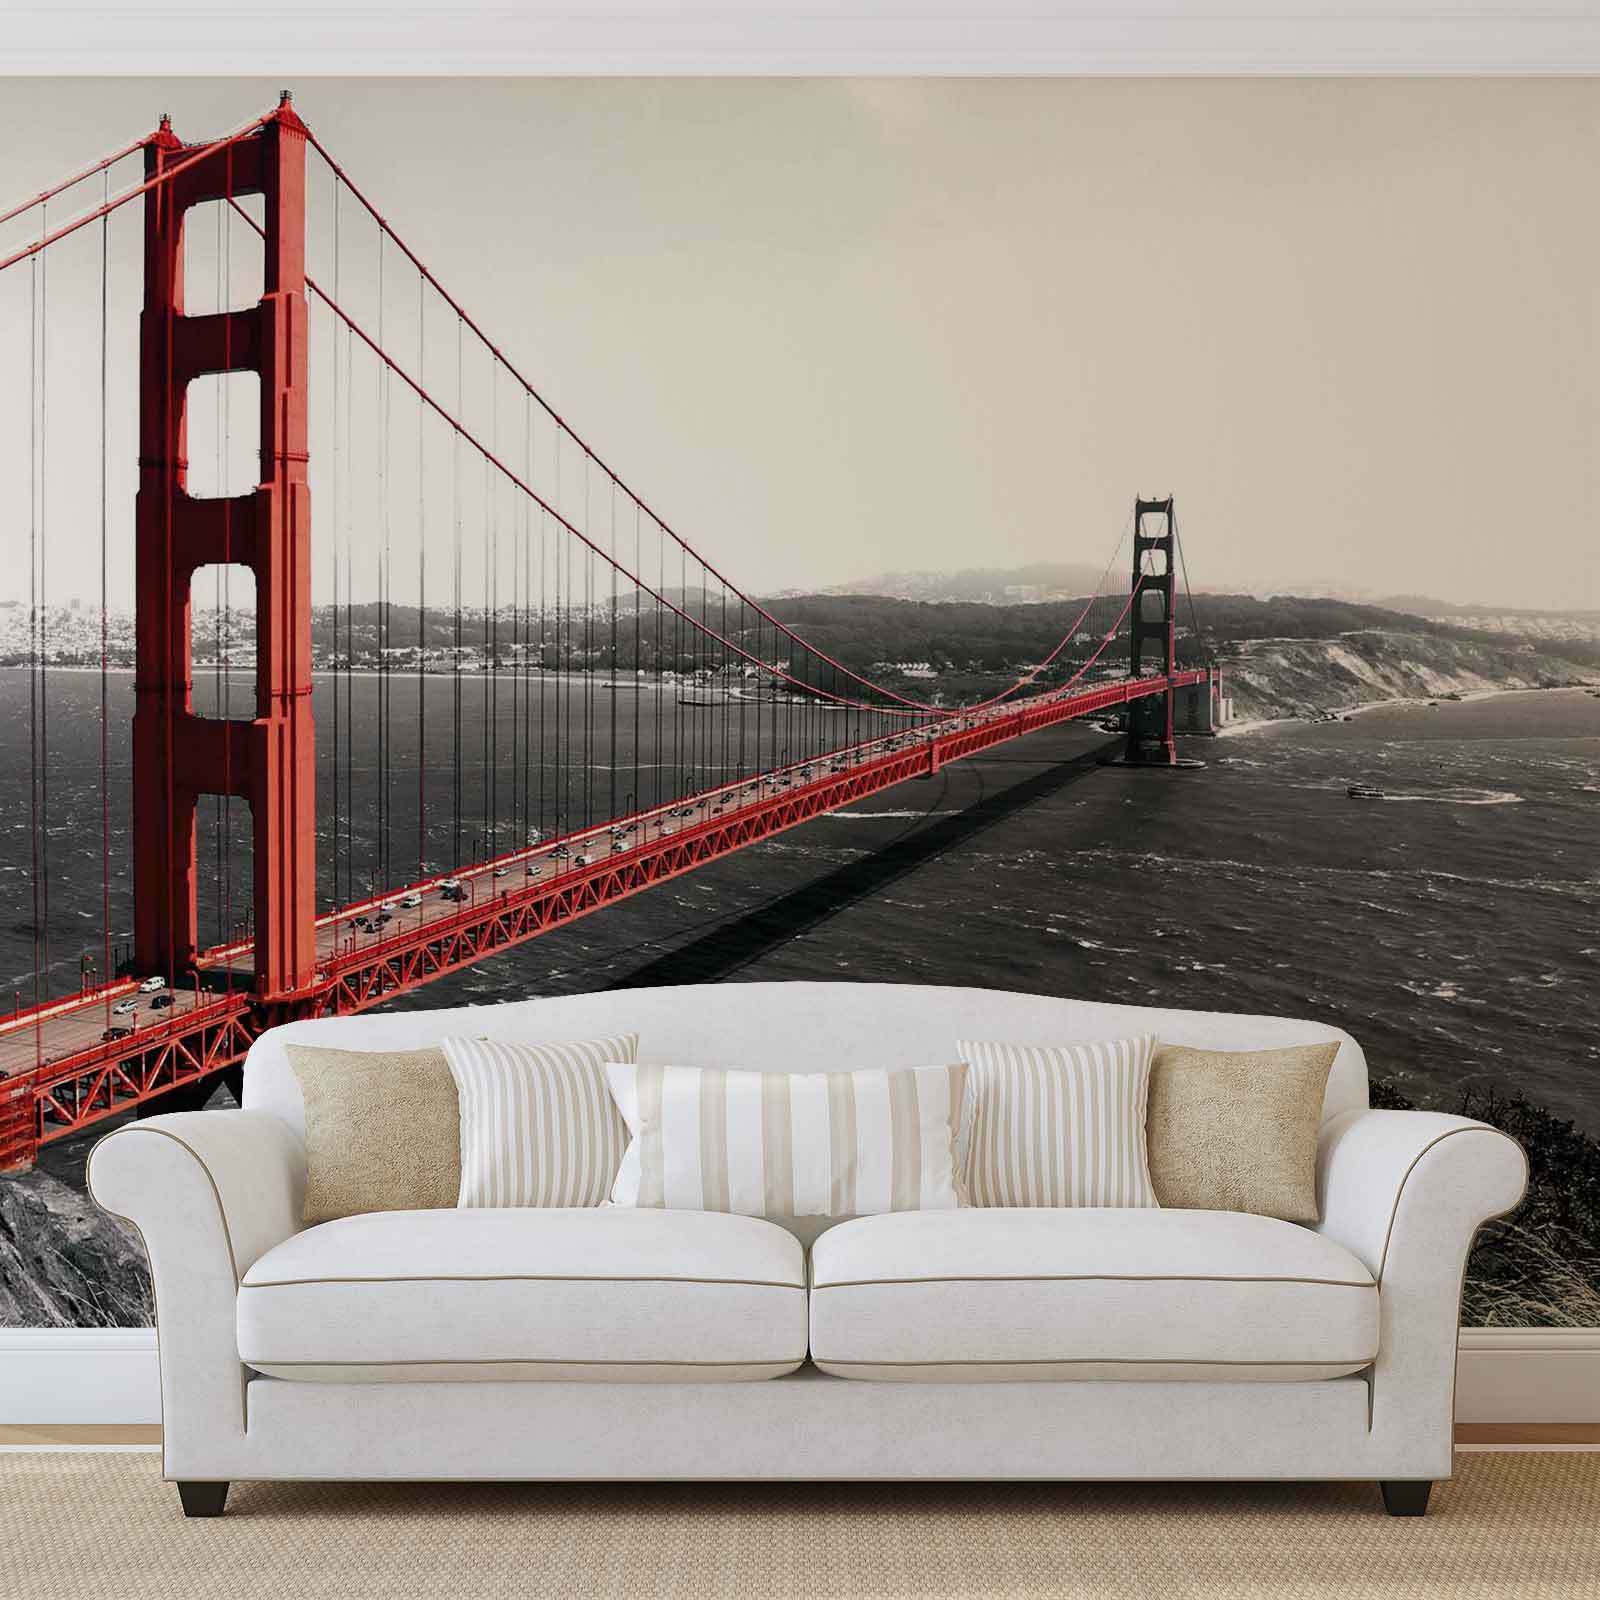 WALL MURAL PHOTO WALLPAPER XXL City golden Gate Bridge (154WS)